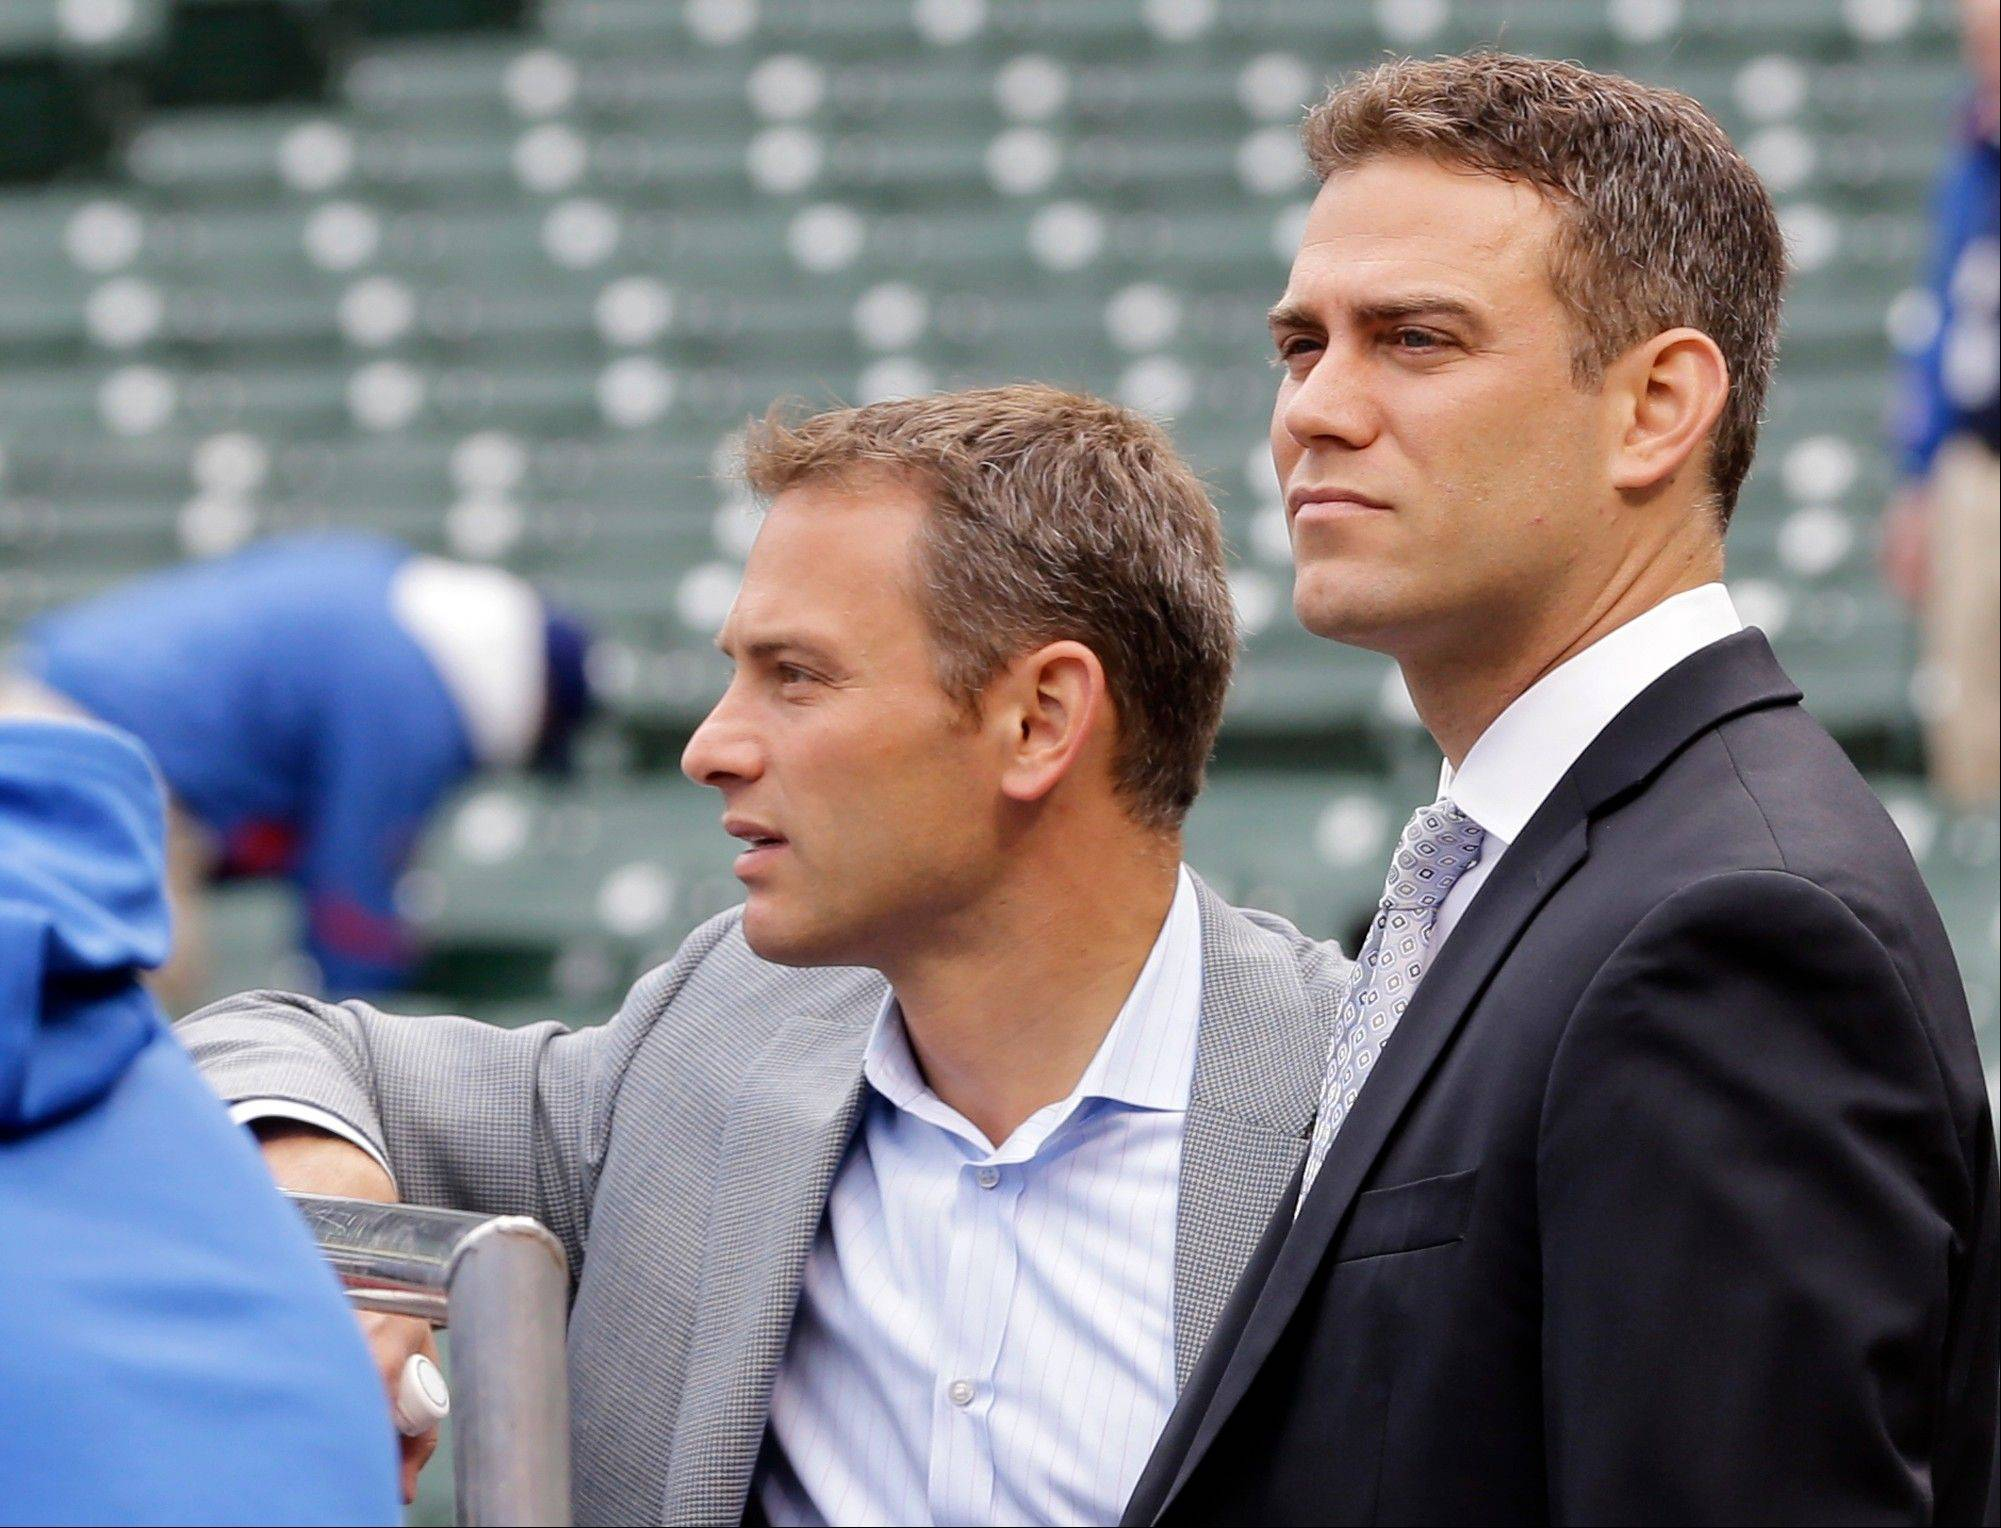 Cubs President of Baseball Operations Theo Epstein, right, and general manager Jed Hoyer watch the team's batting practice before Monday's home-opener at Wrigley Field.